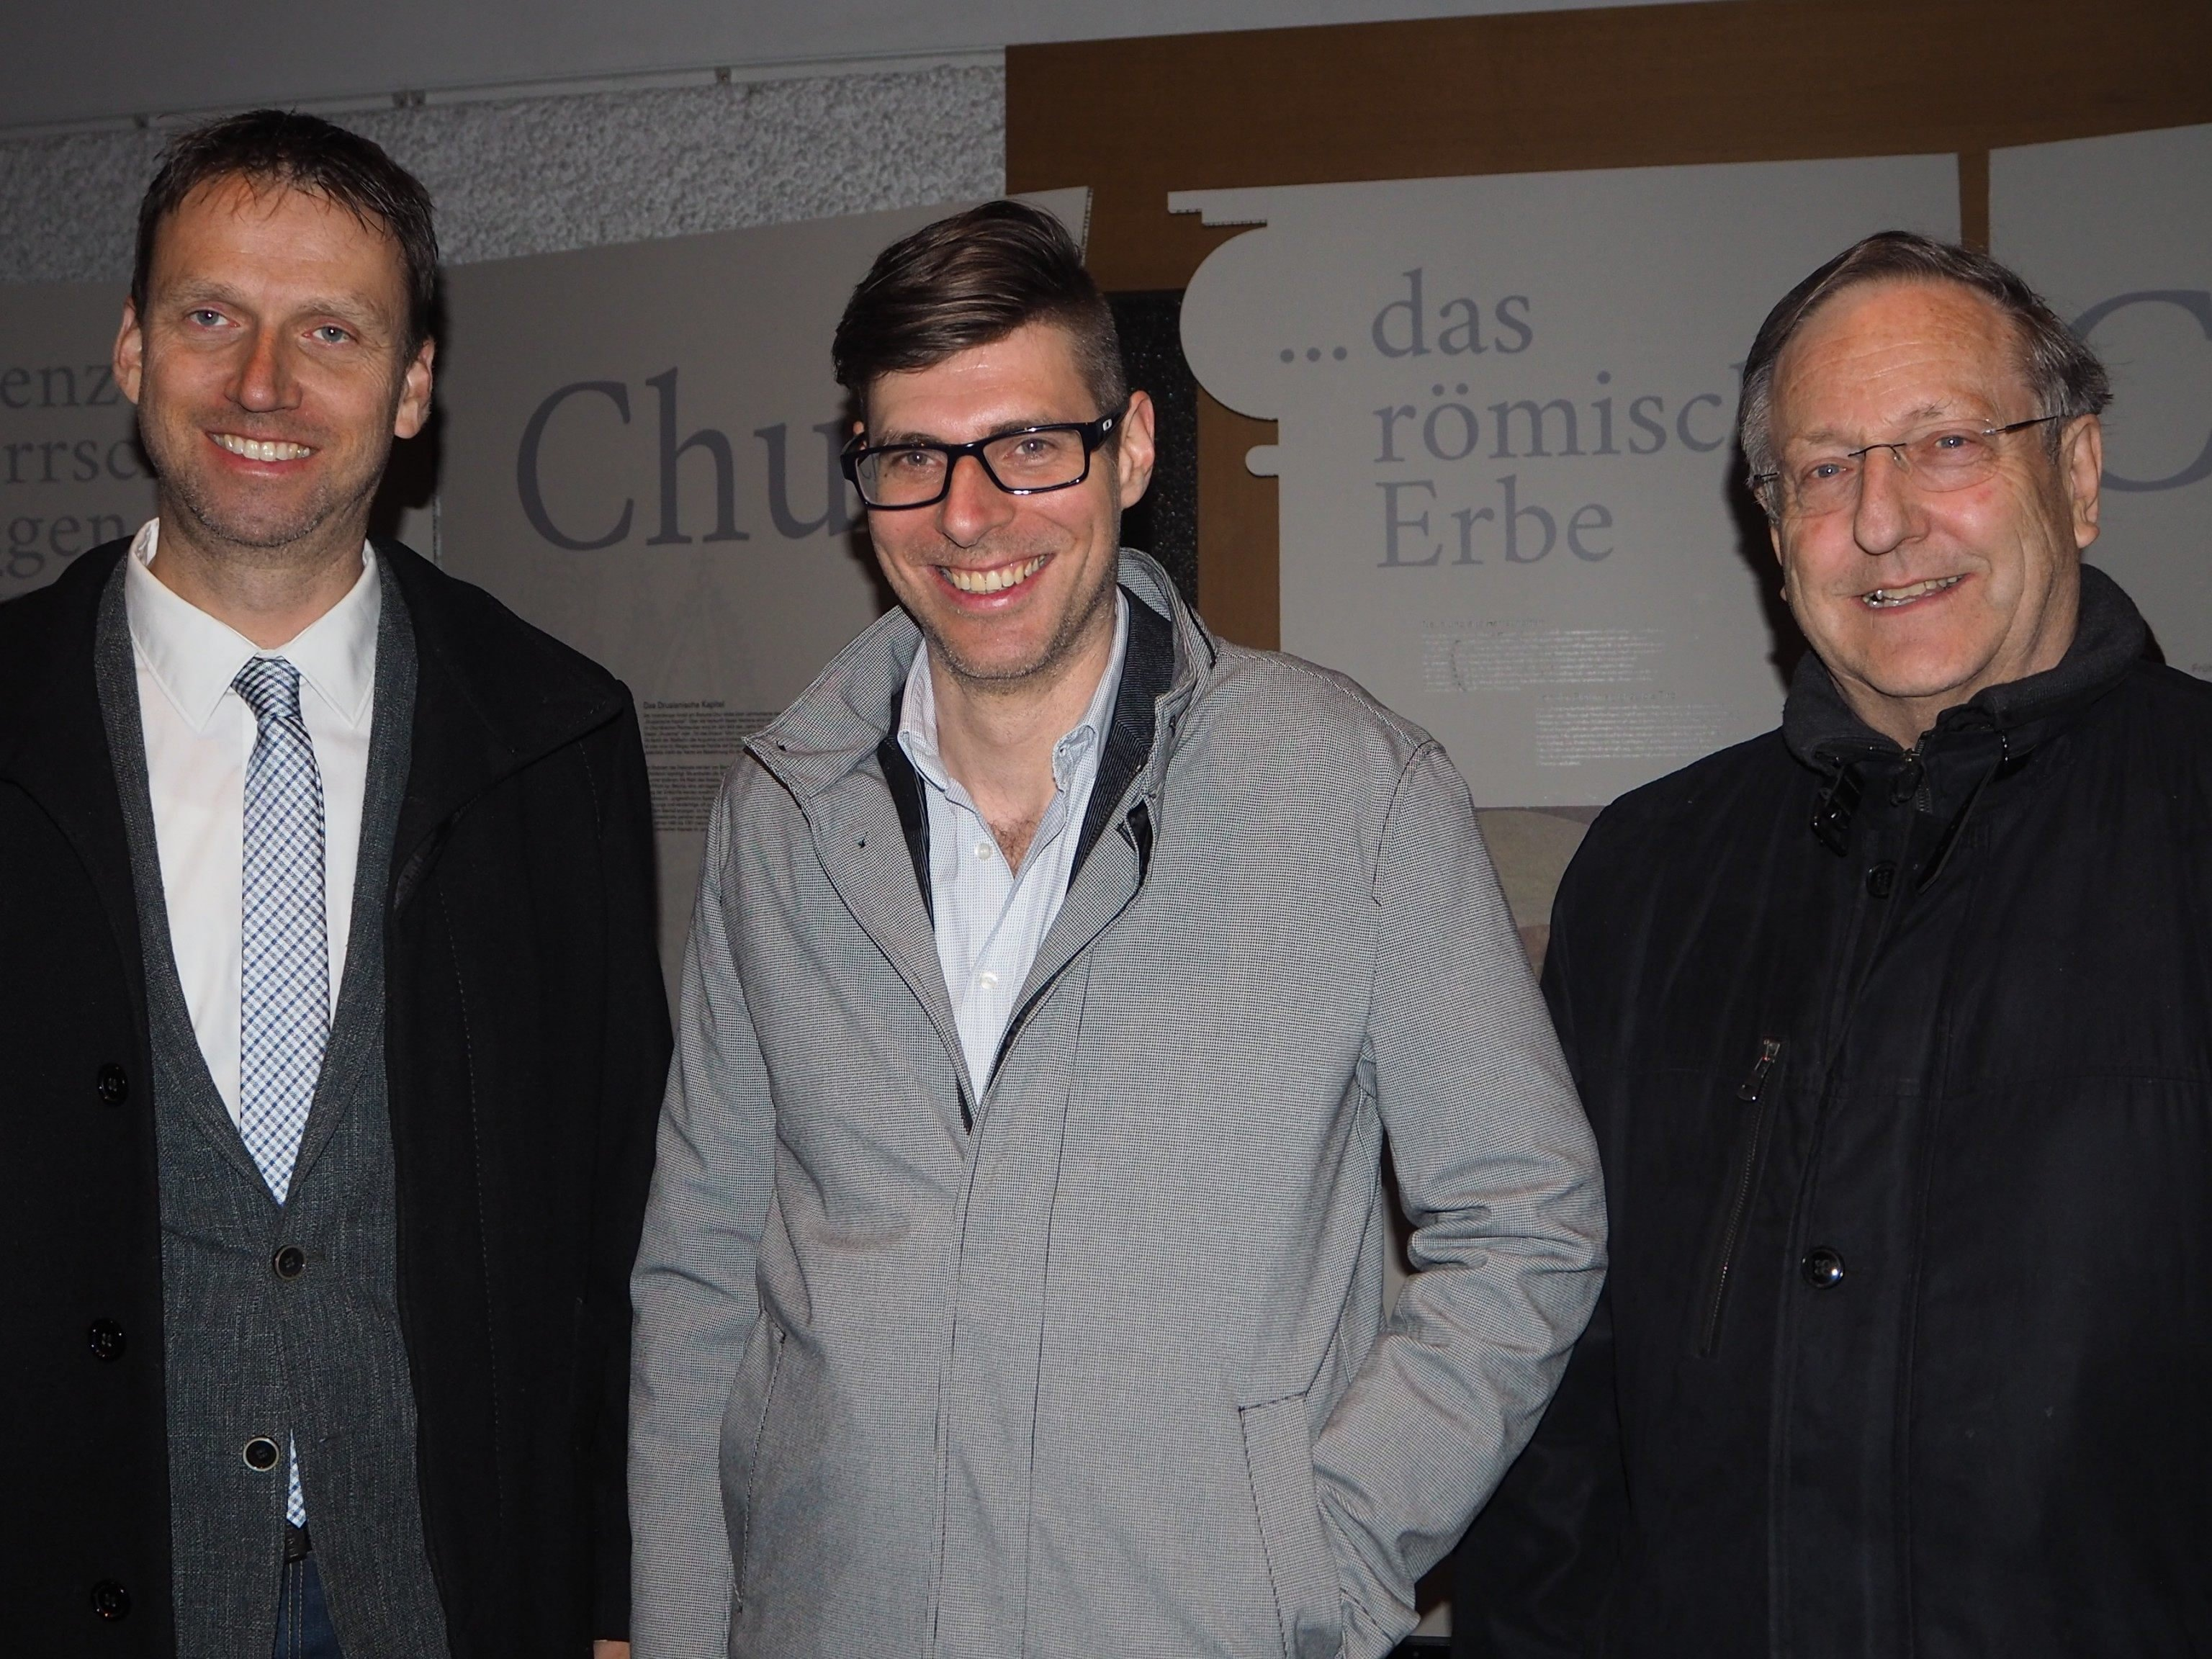 Peter Mayerhofer, Michael Fliri, Wilfried Blum